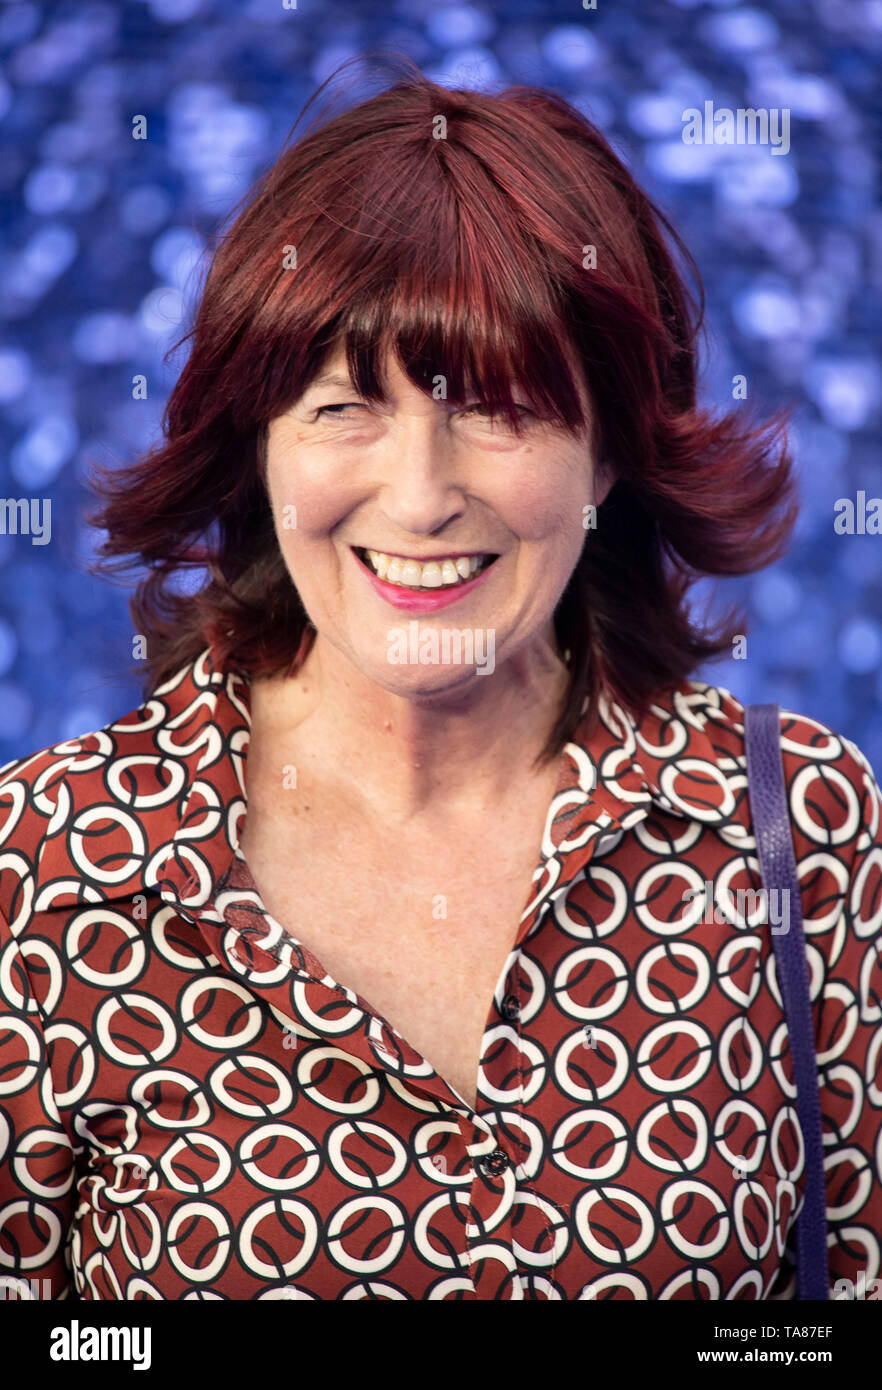 London, UK.  Janet Street-Porter     at UK Premiere of Rocketman at the Odeon Luxe, Leicester Square, London on May 20th 2019.  Ref: LMK386-S2465-210519 Gary Mitchell/Landmark Media WWW.LMKMEDIA.COM - Stock Image